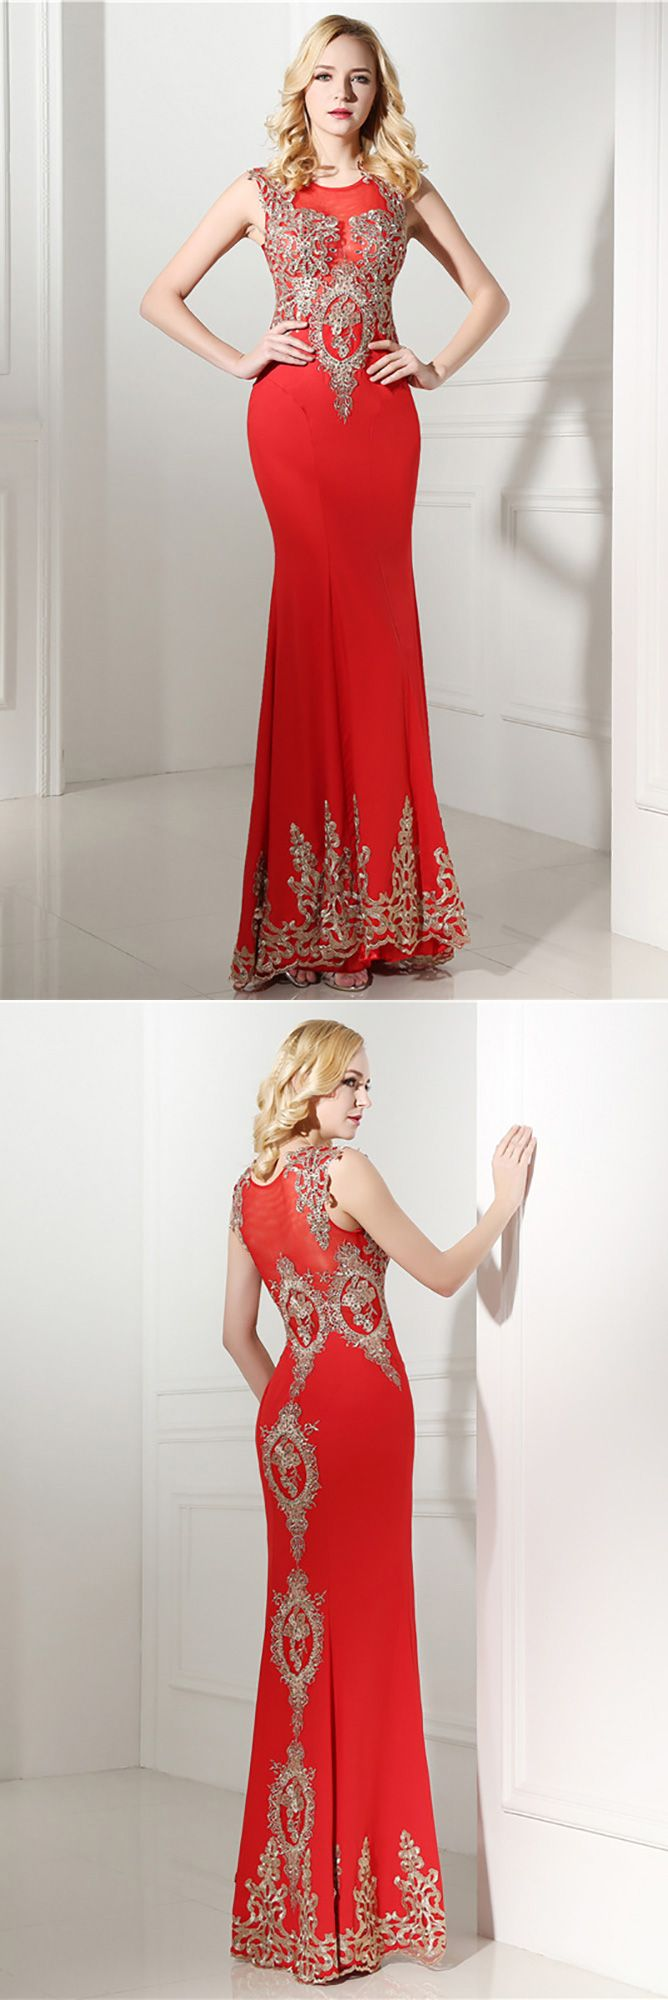 bodycon red formal dress long with applique lace h